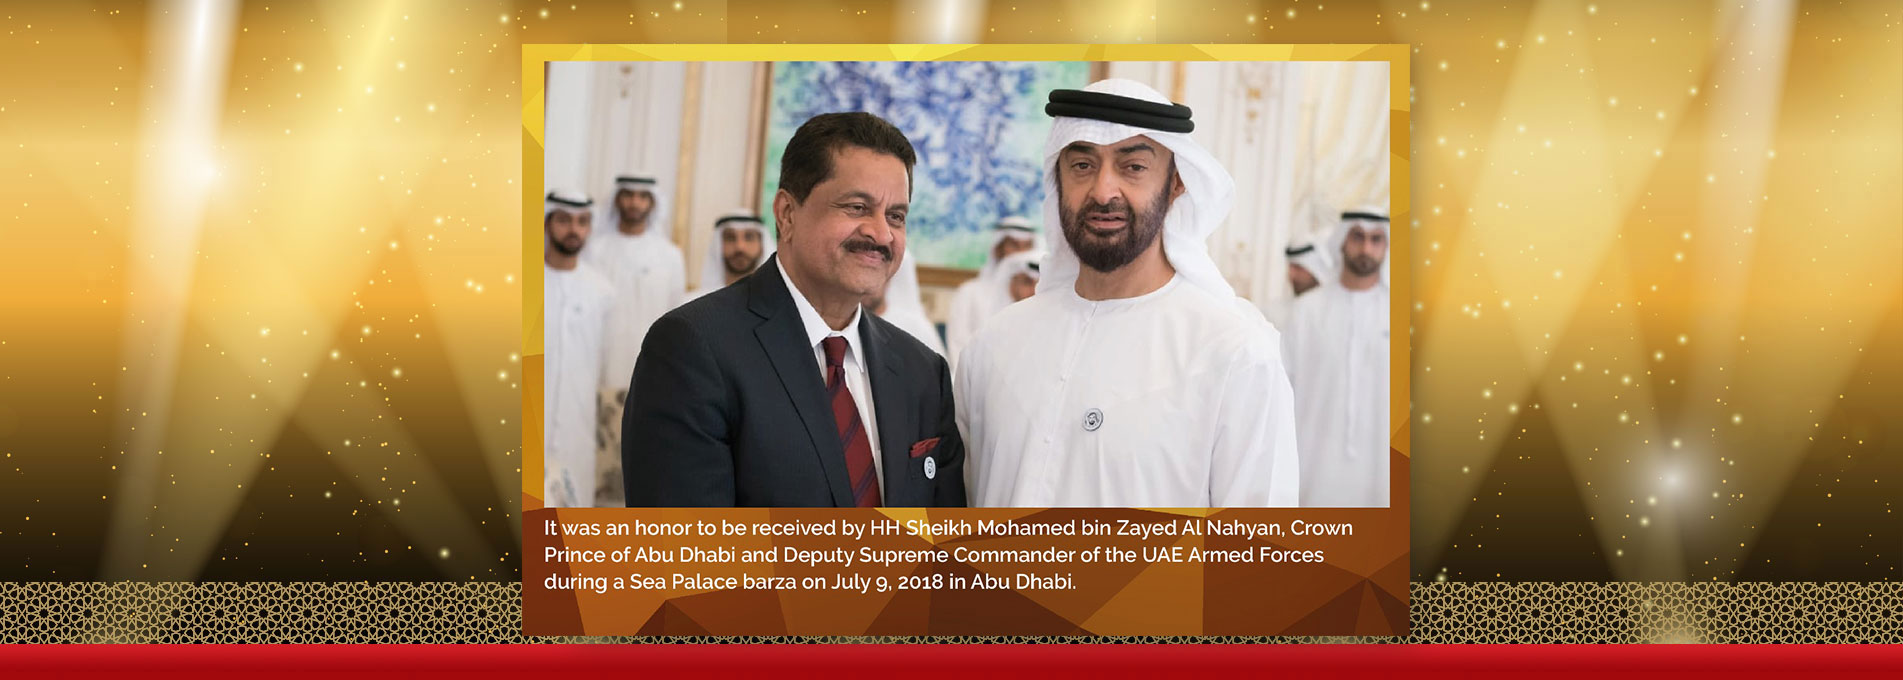 HH Sheikh Mohamed bin Zayed Al Nahyan receives Dr. Thumbay Moideen